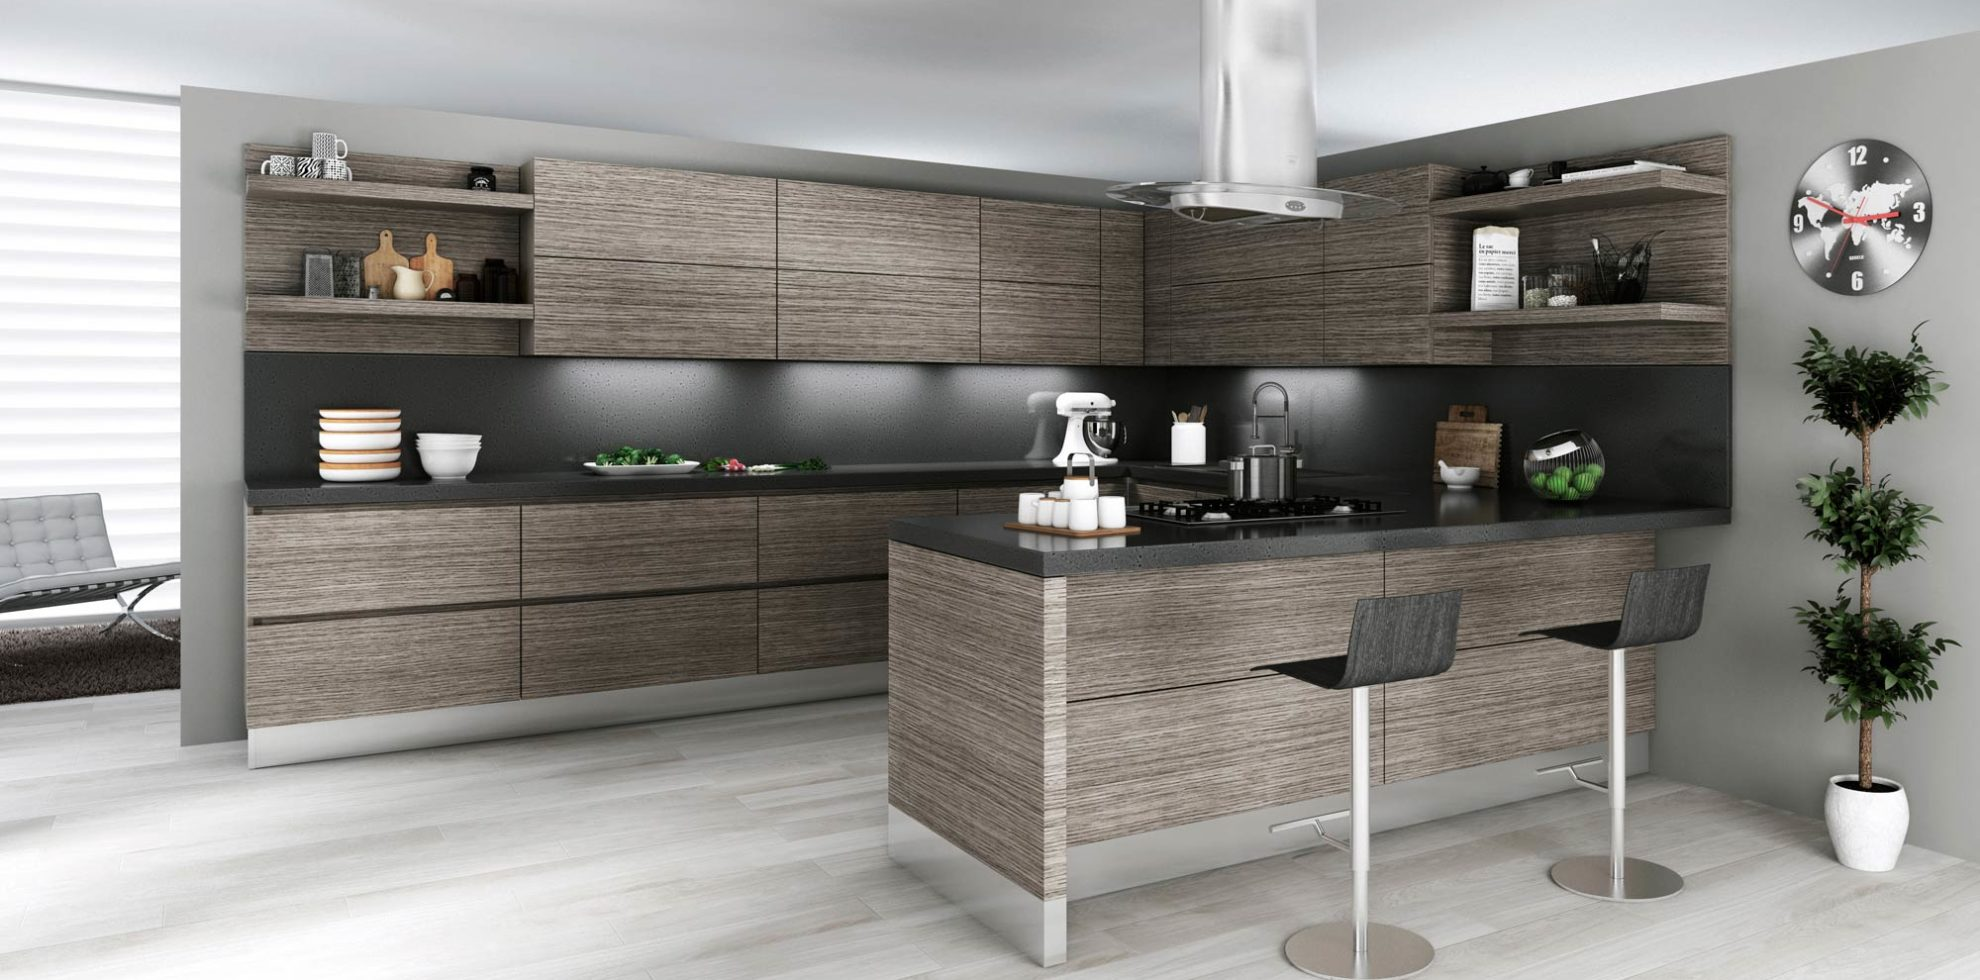 Modern Kitchen Designs Buy Online Product Rovere Modern Rta Kitchen Cabinets Buy Online